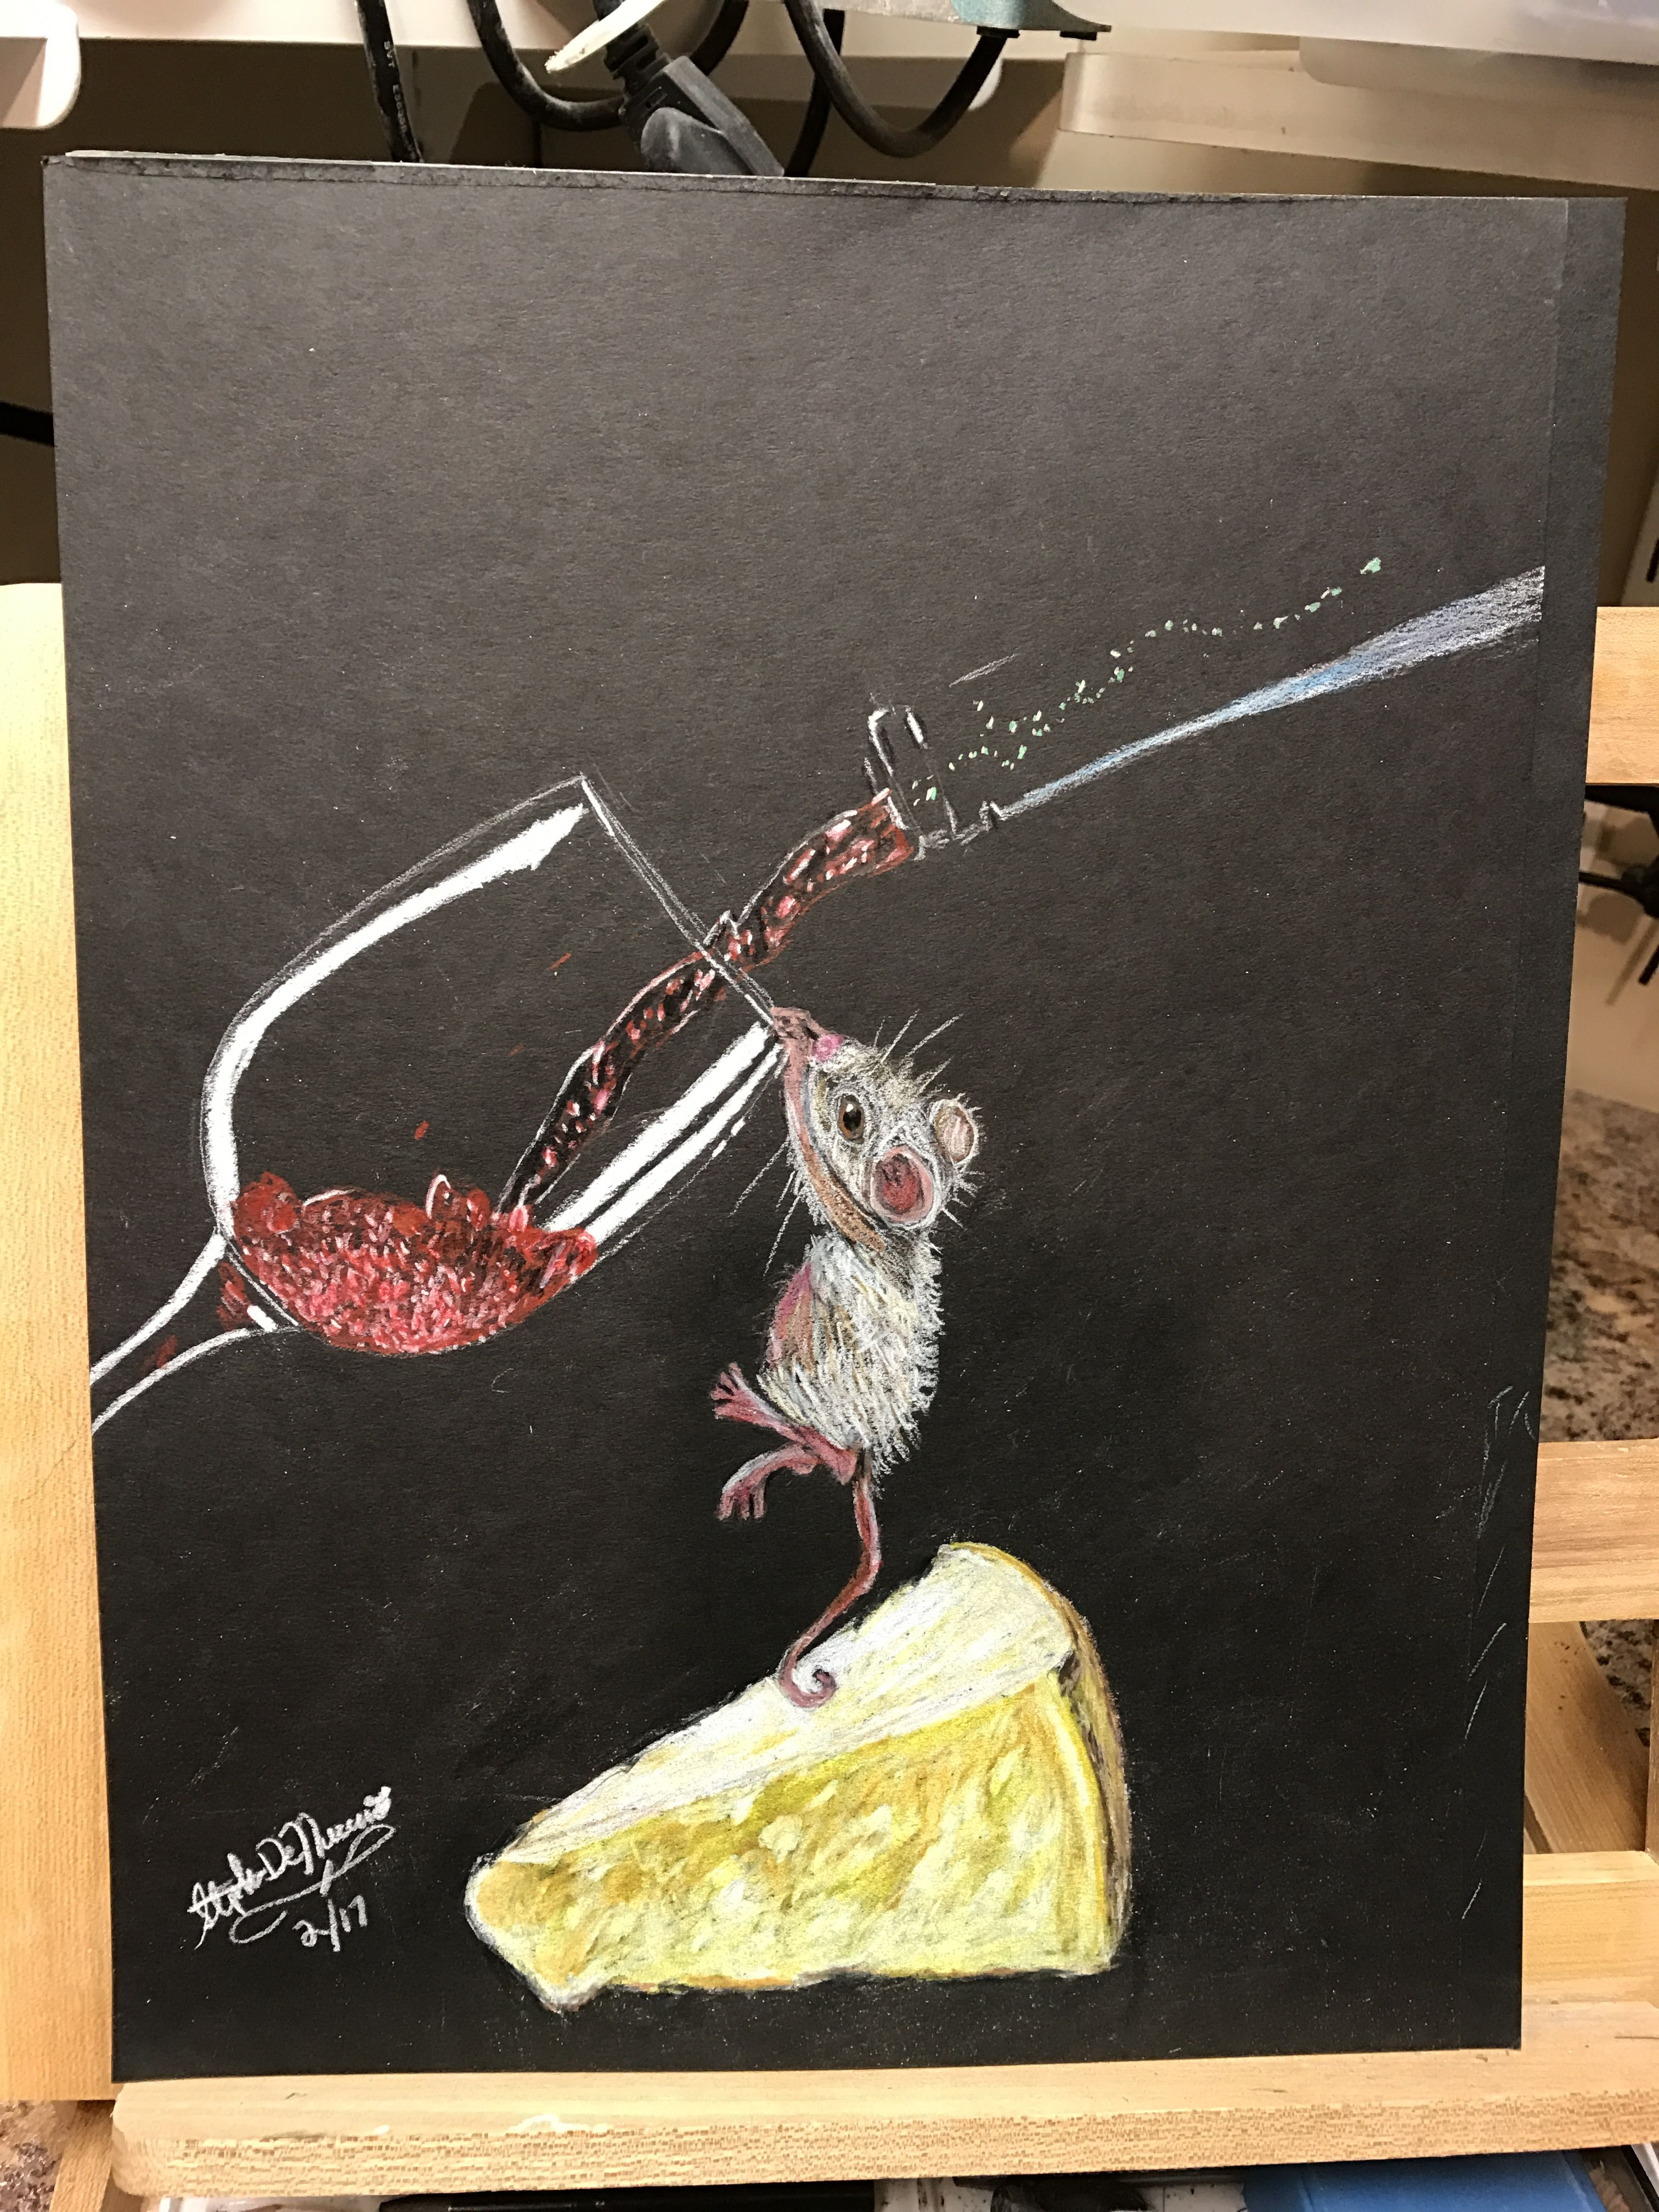 Was Hired To Draw Something For A Wine Cheese Event So I Came Up